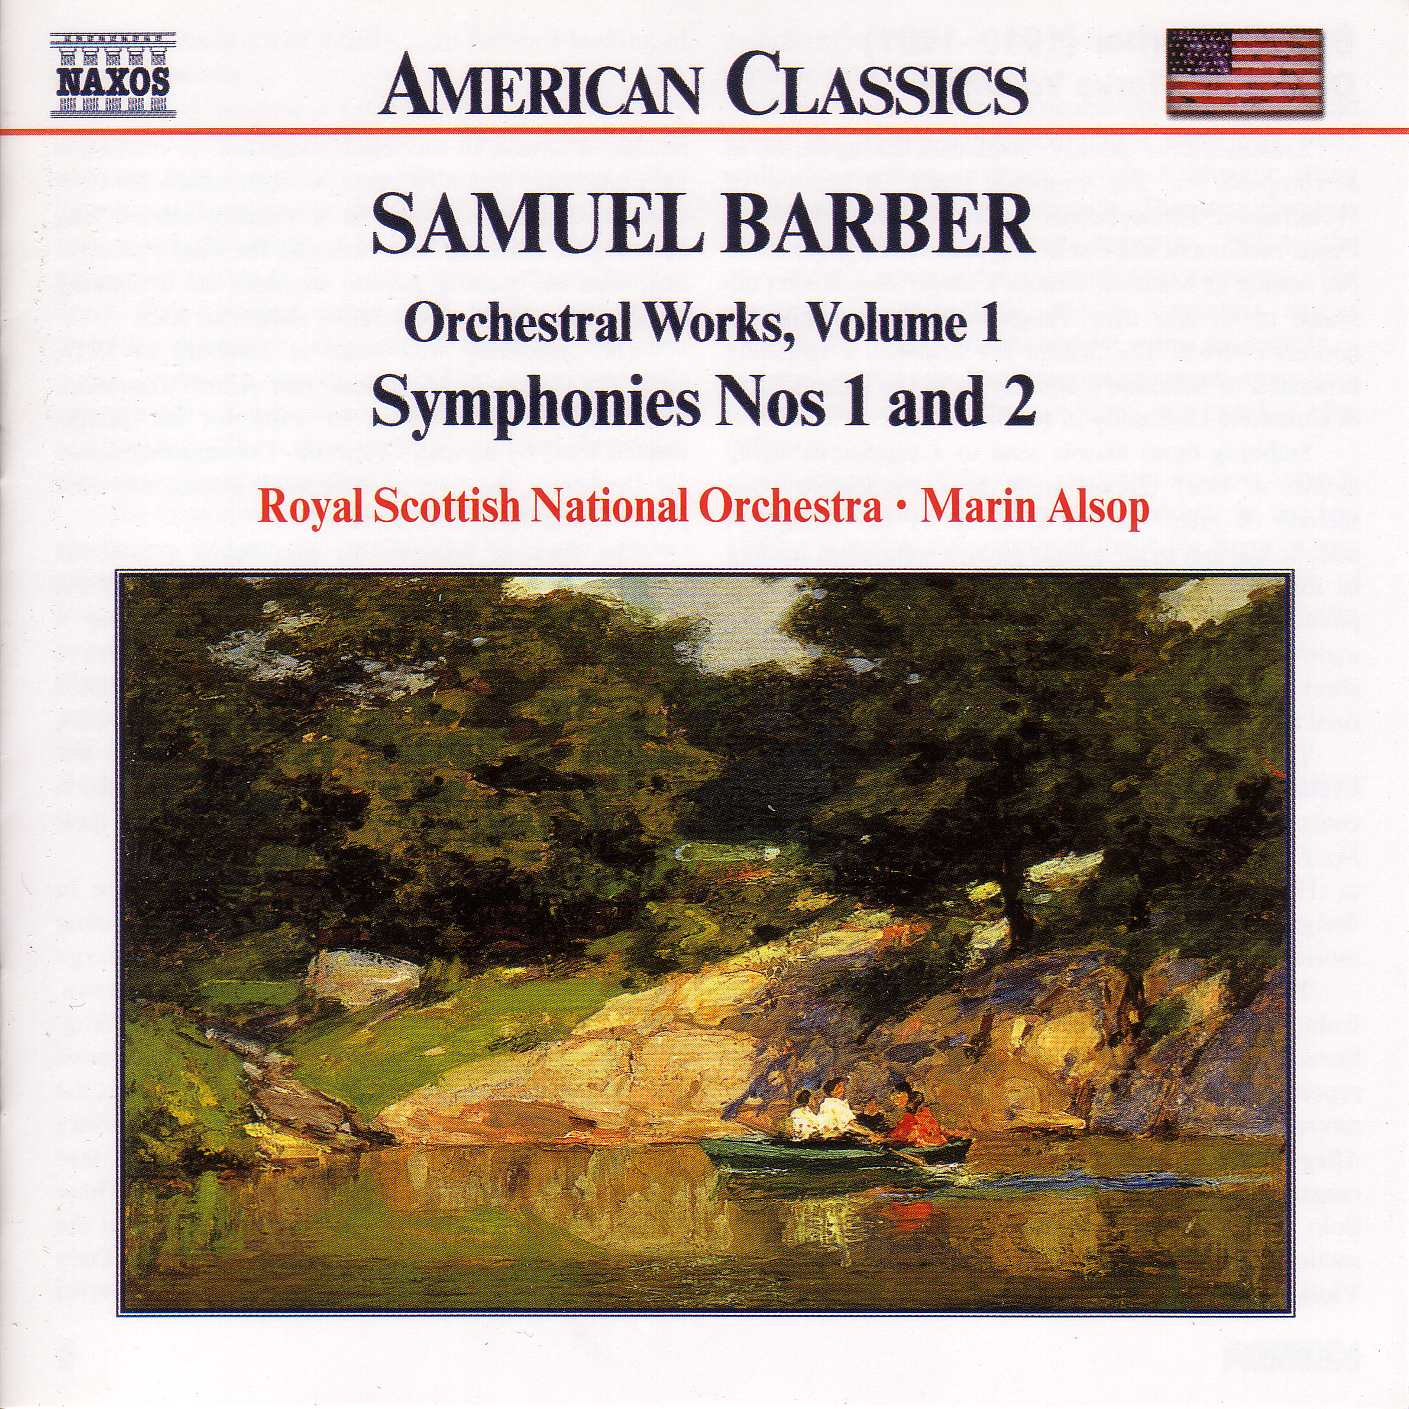 barber symphonies nos and essay for orchestra 1 and 2 essay for orchestra no 1